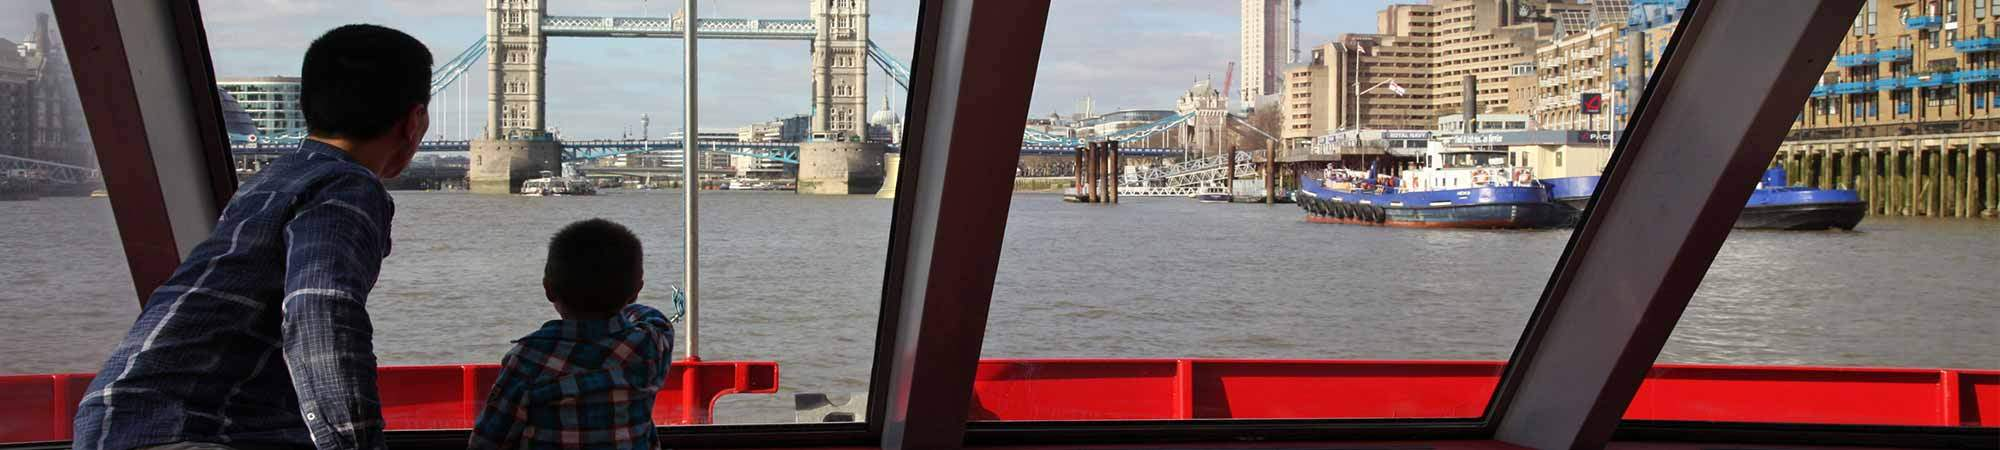 Little Bird 50% off 50 Minute Tours of The River Thames with City Cruises- Great Day Out This Summer!